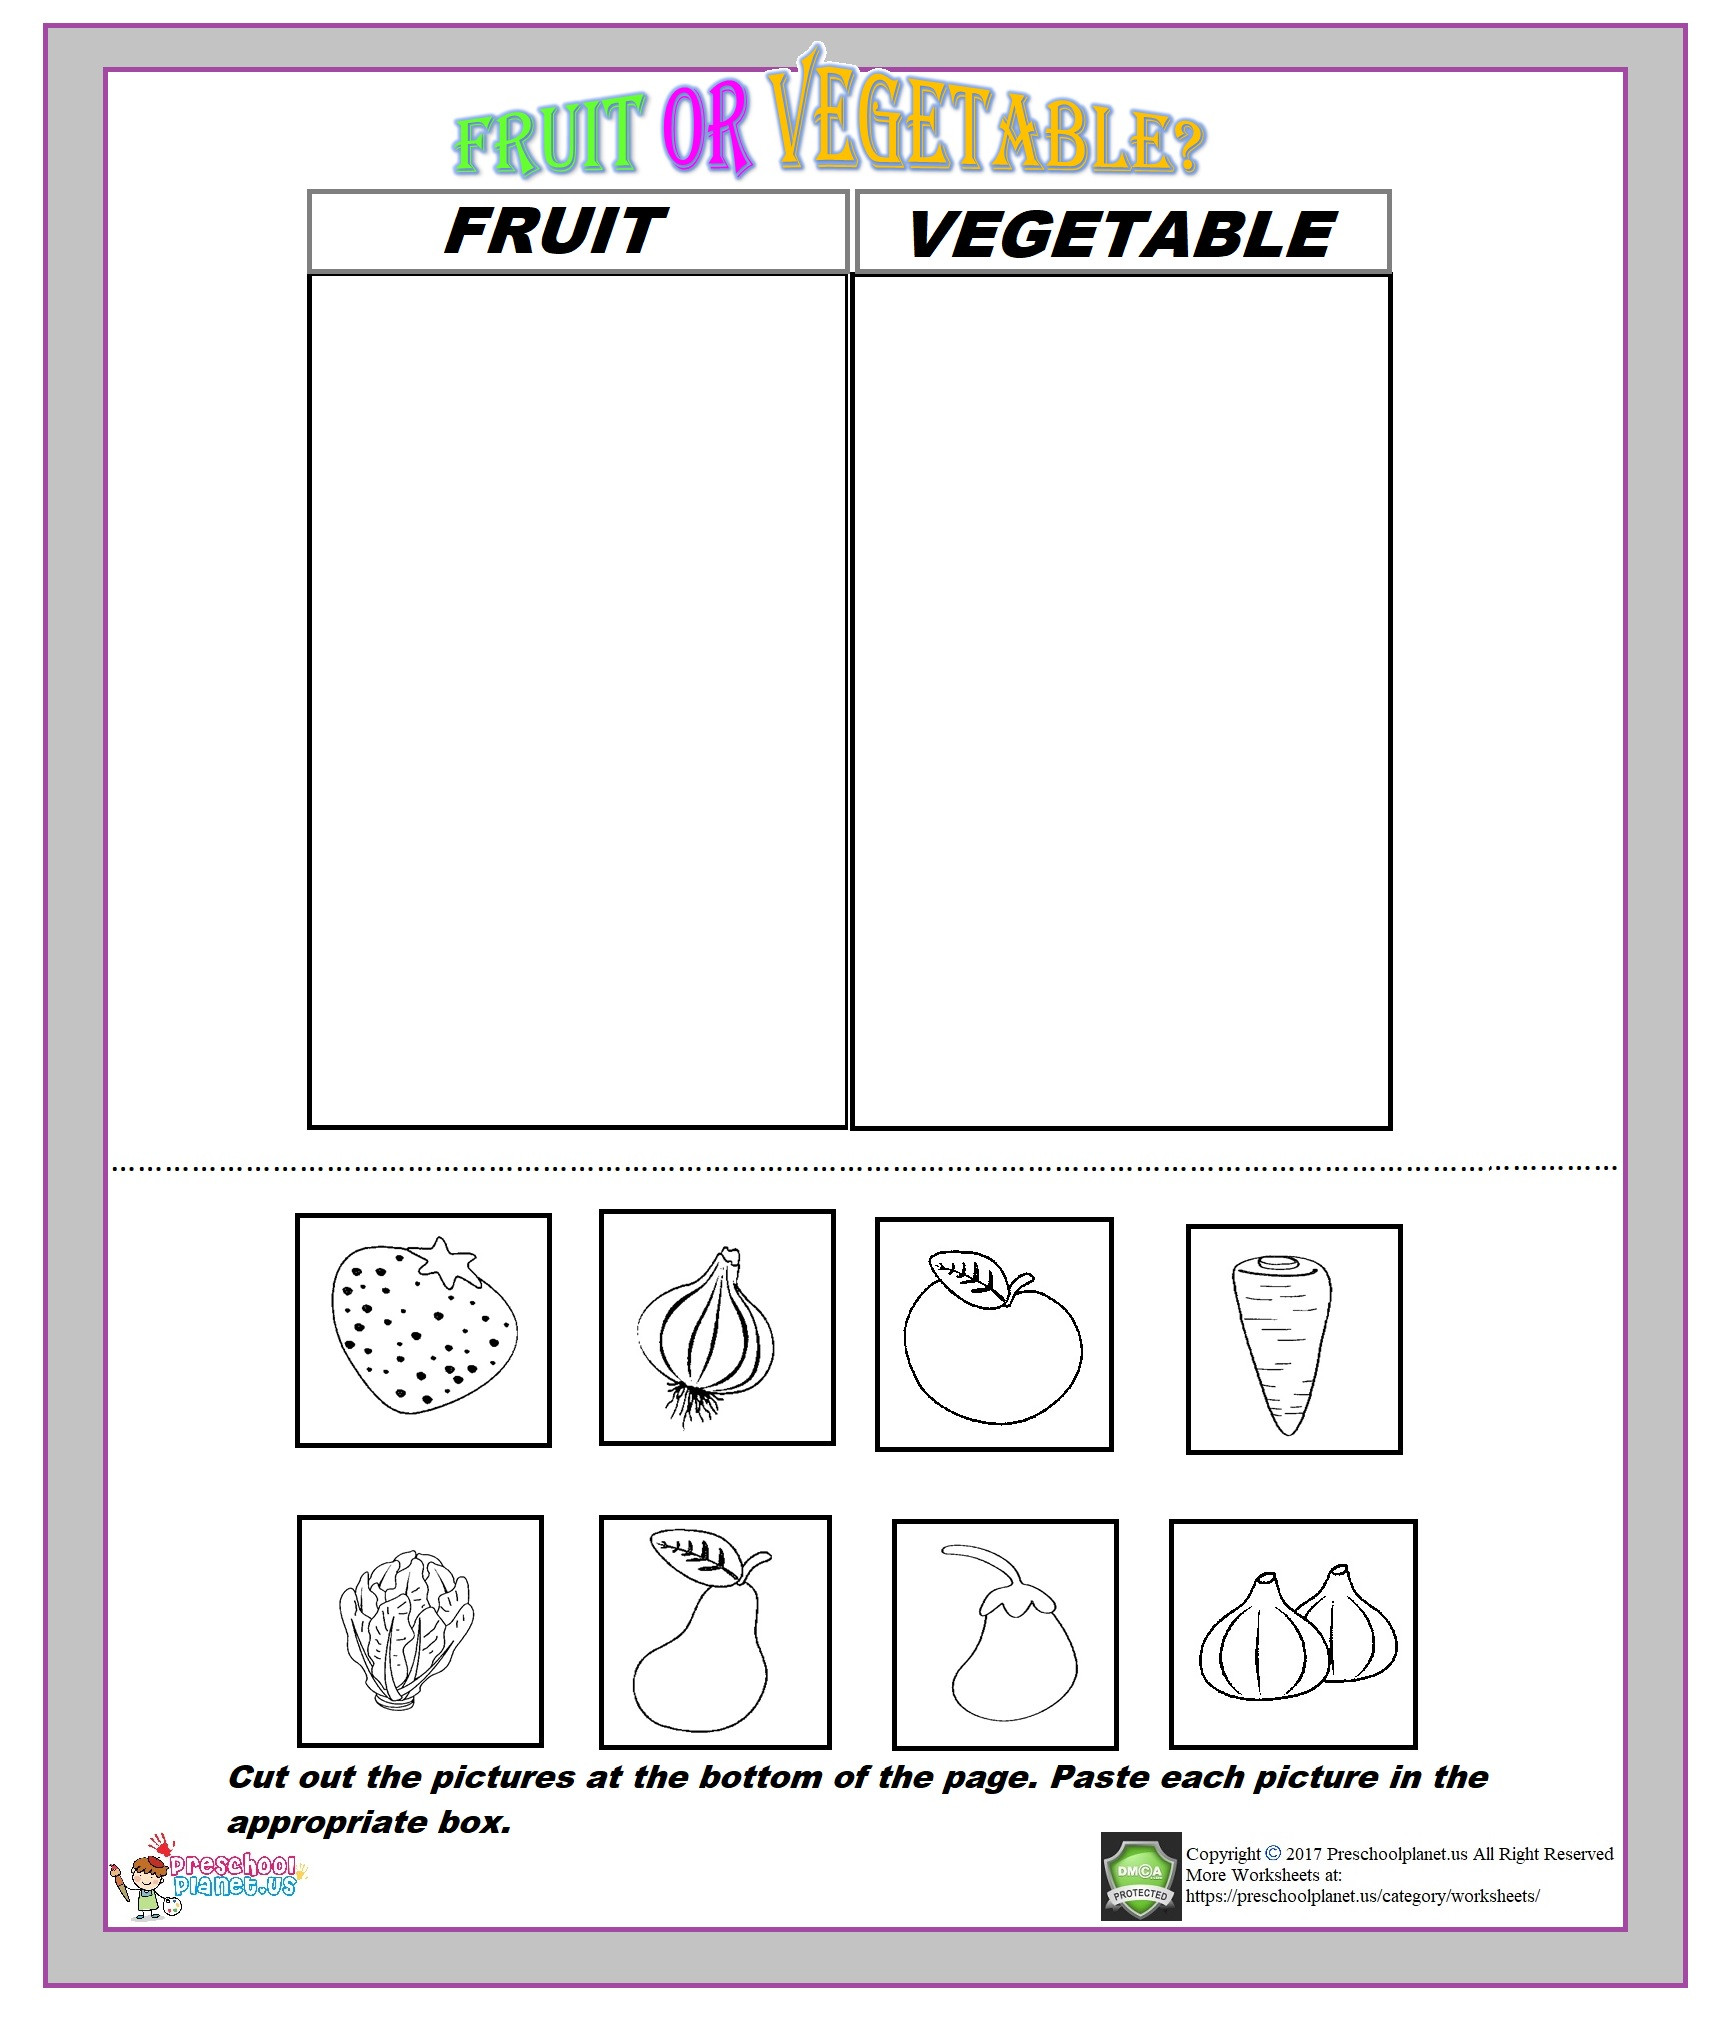 Preschool Fruits and Vegetables Worksheets Fruit or Ve Able Worksheet – Preschoolplanet